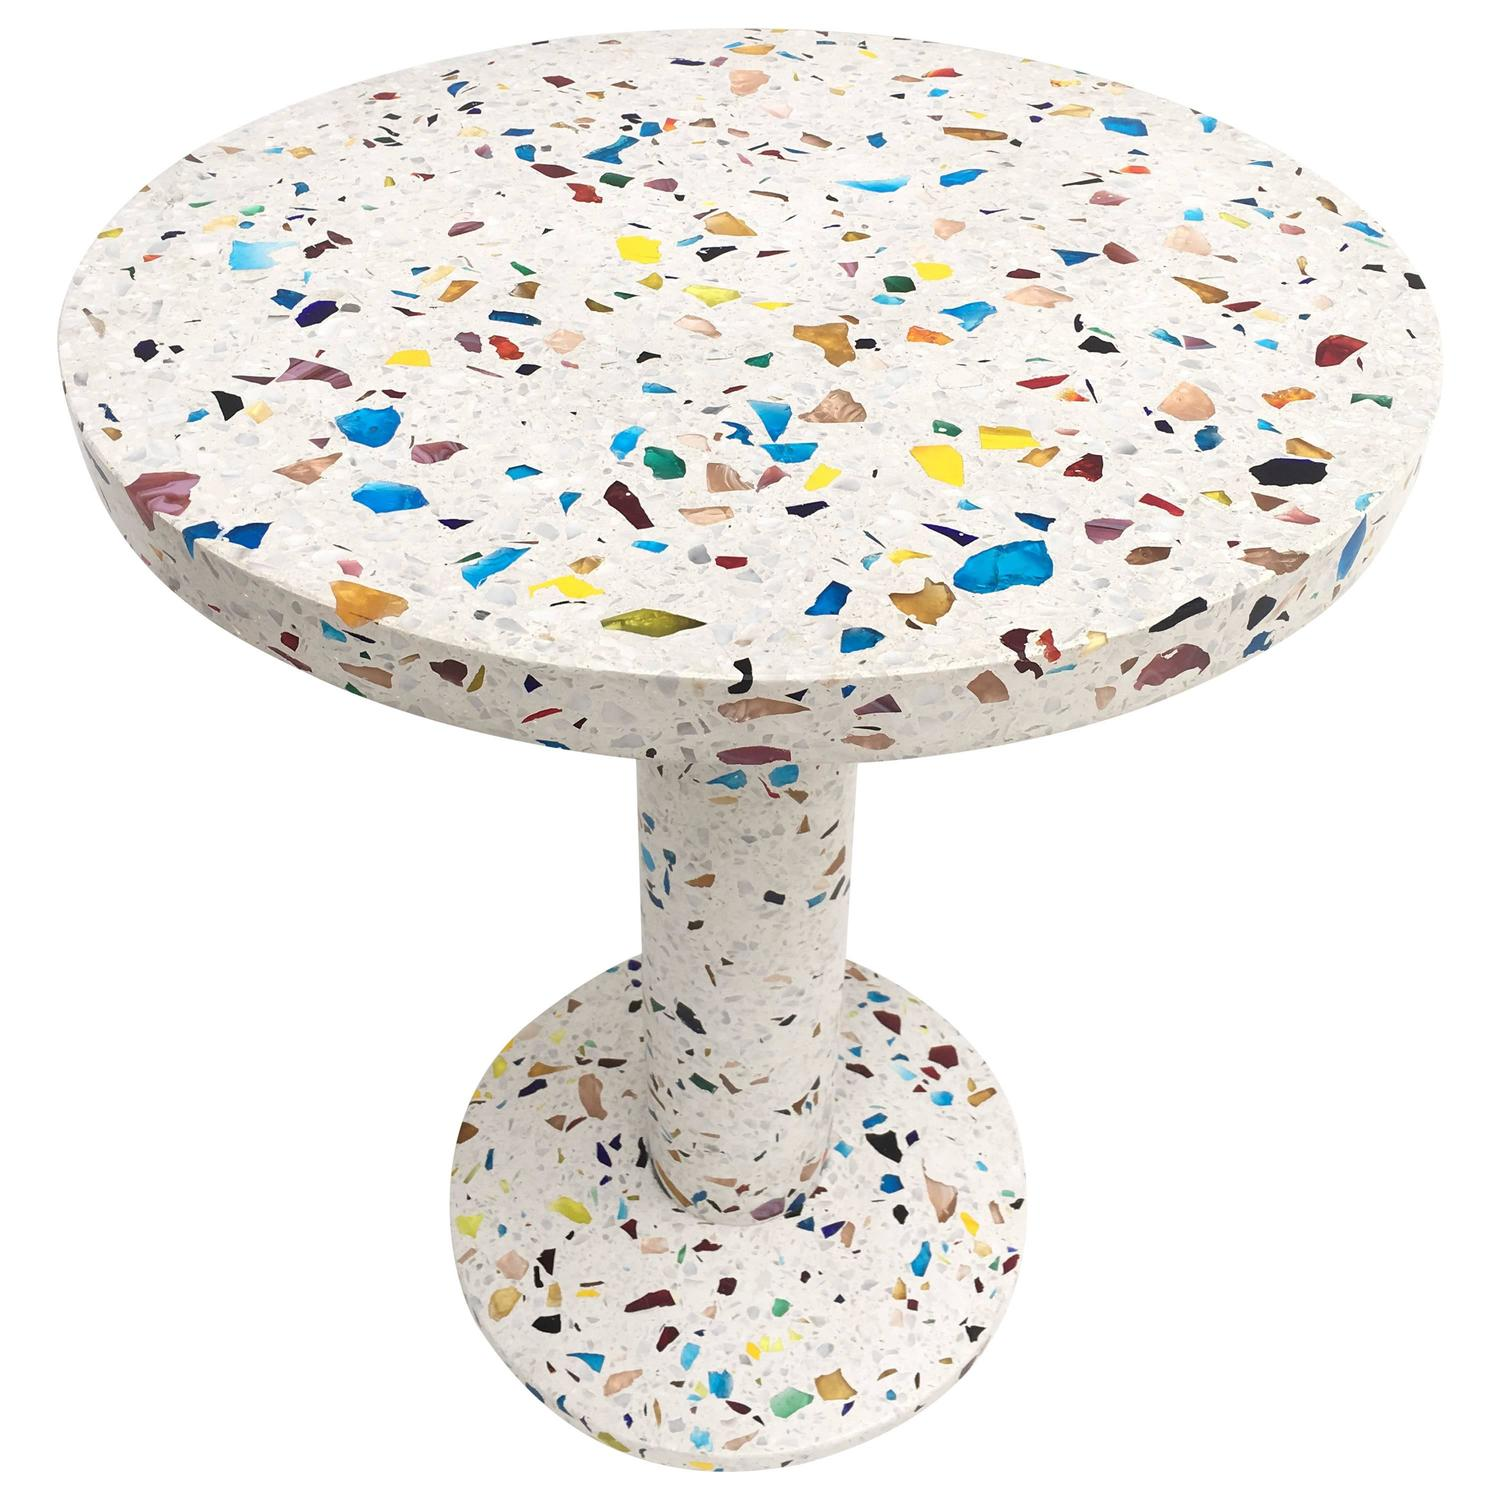 kyoto table by shiro kuramata memphis number  confirmed  - kyoto table by shiro kuramata memphis number  confirmed sproduction for sale at stdibs